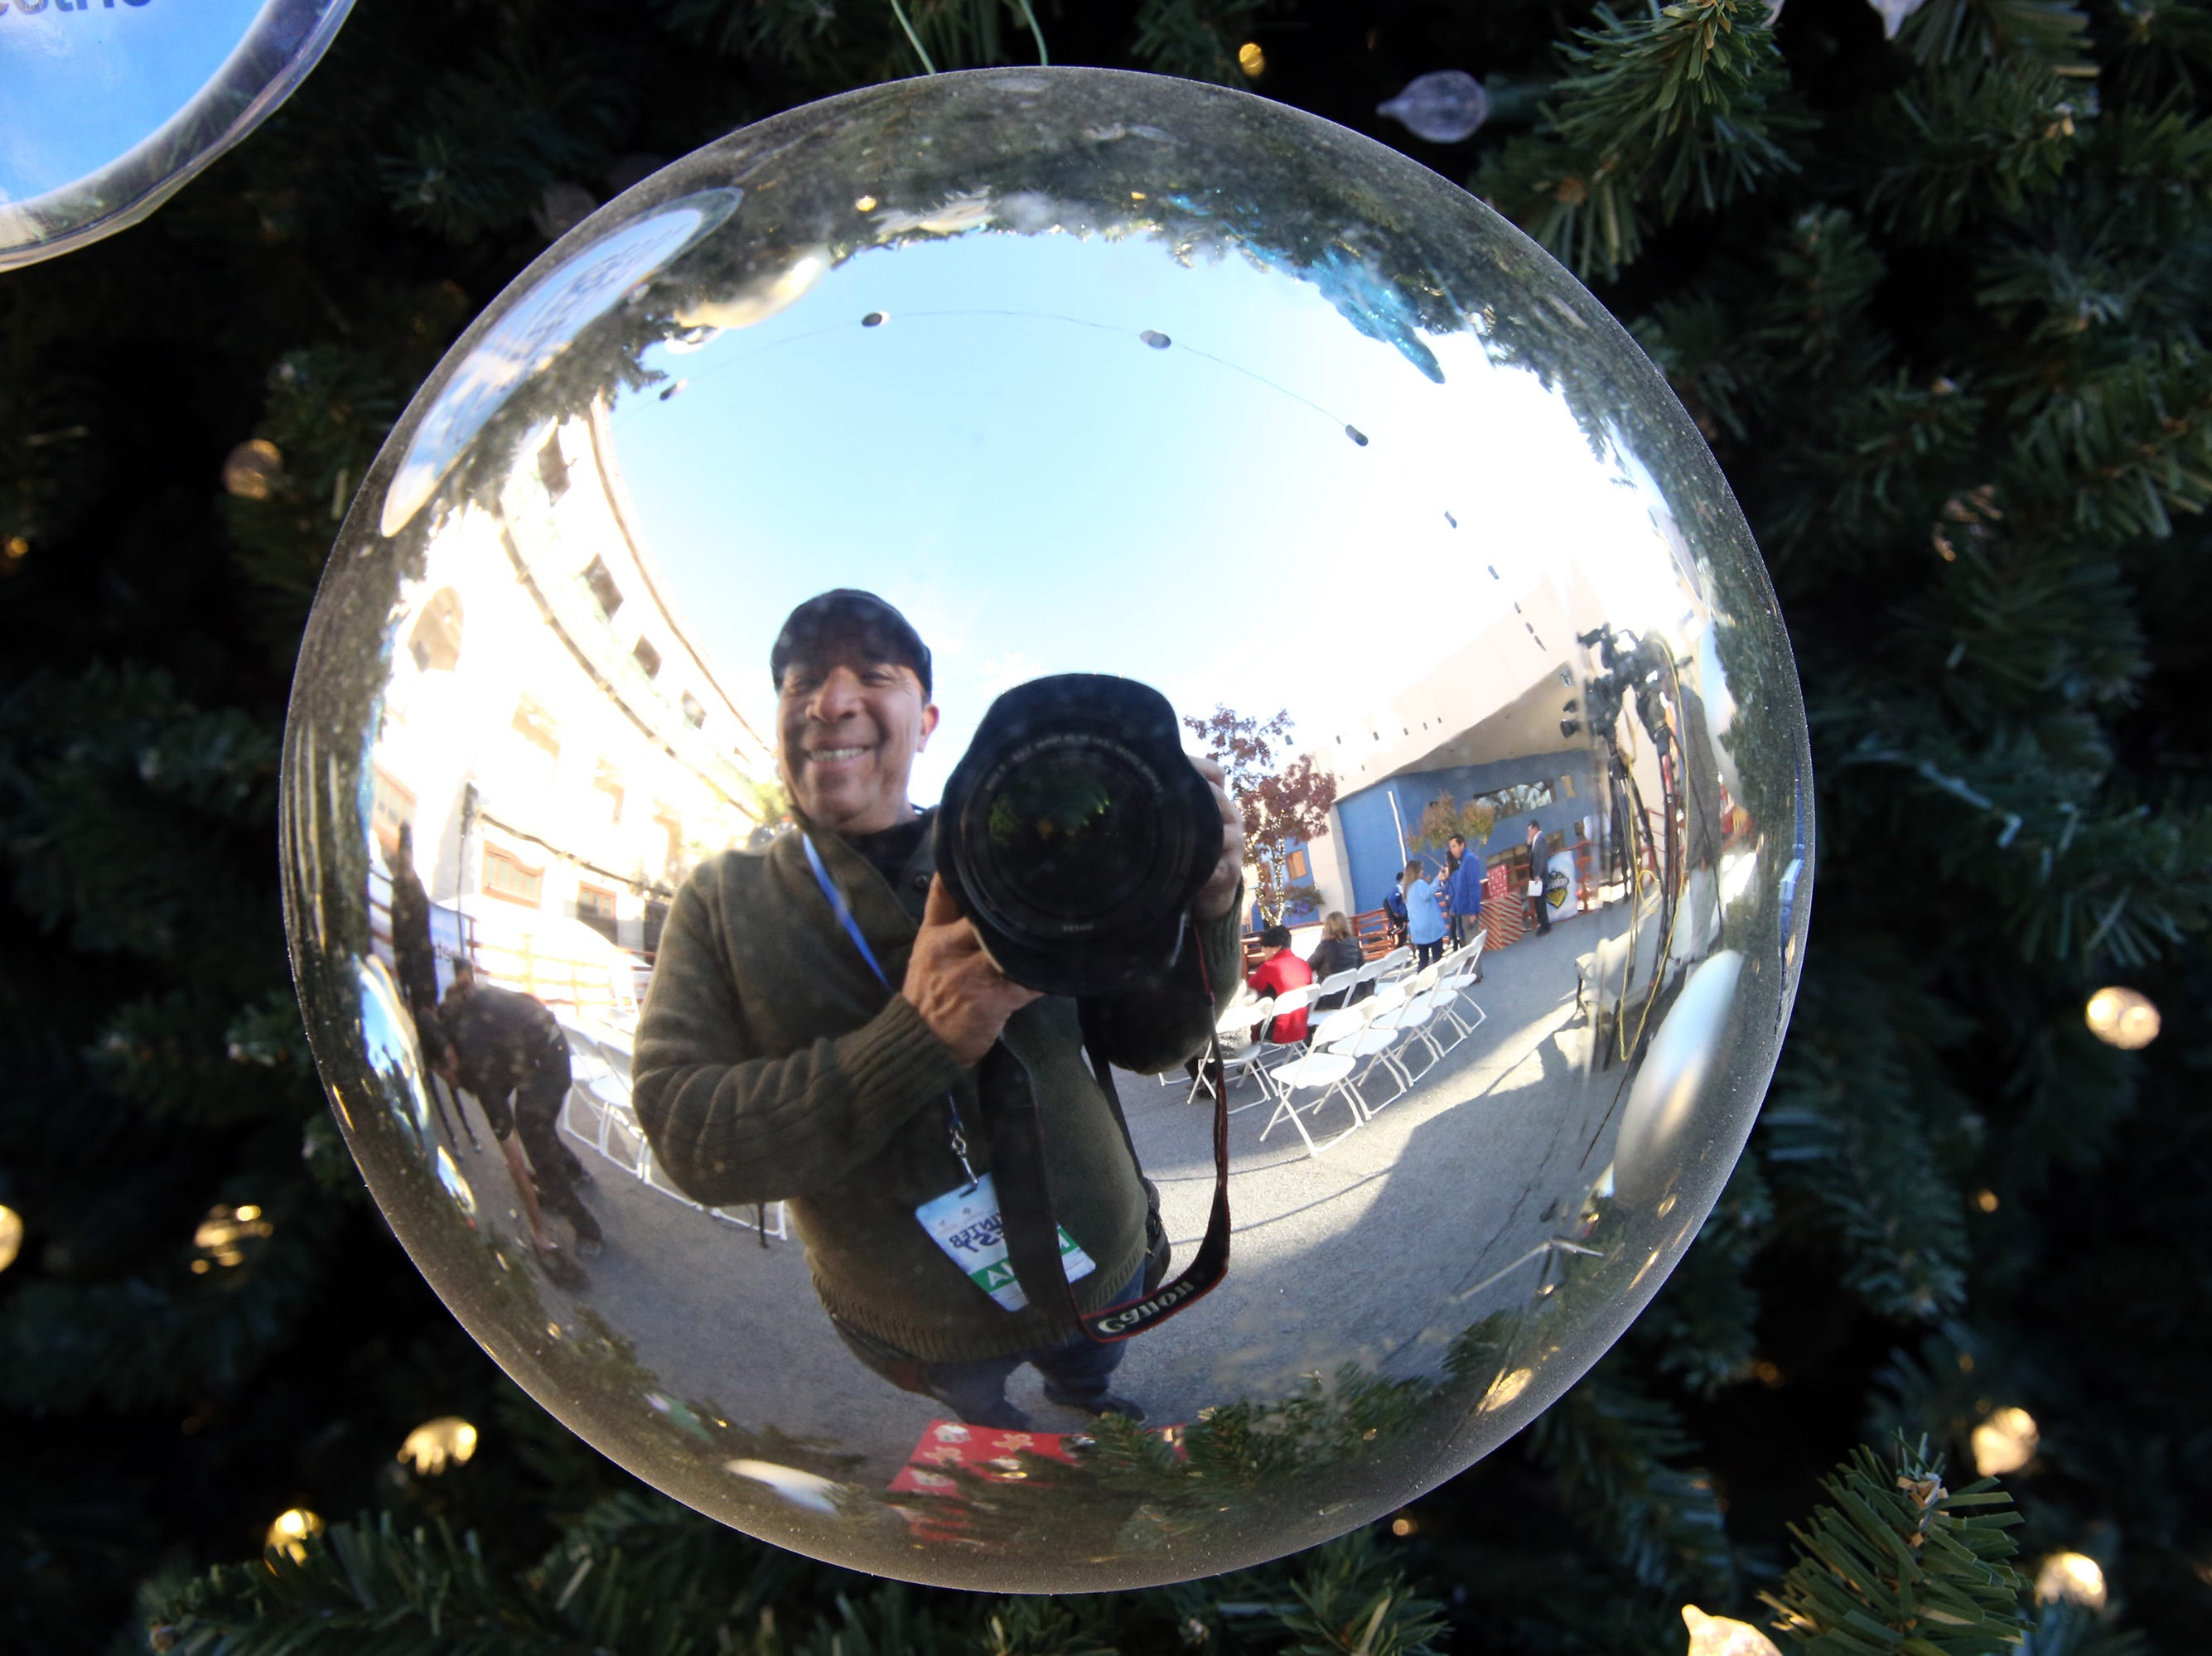 Rudy Gutierrez' reflection on an ornament in downtown El Paso December, 2018.